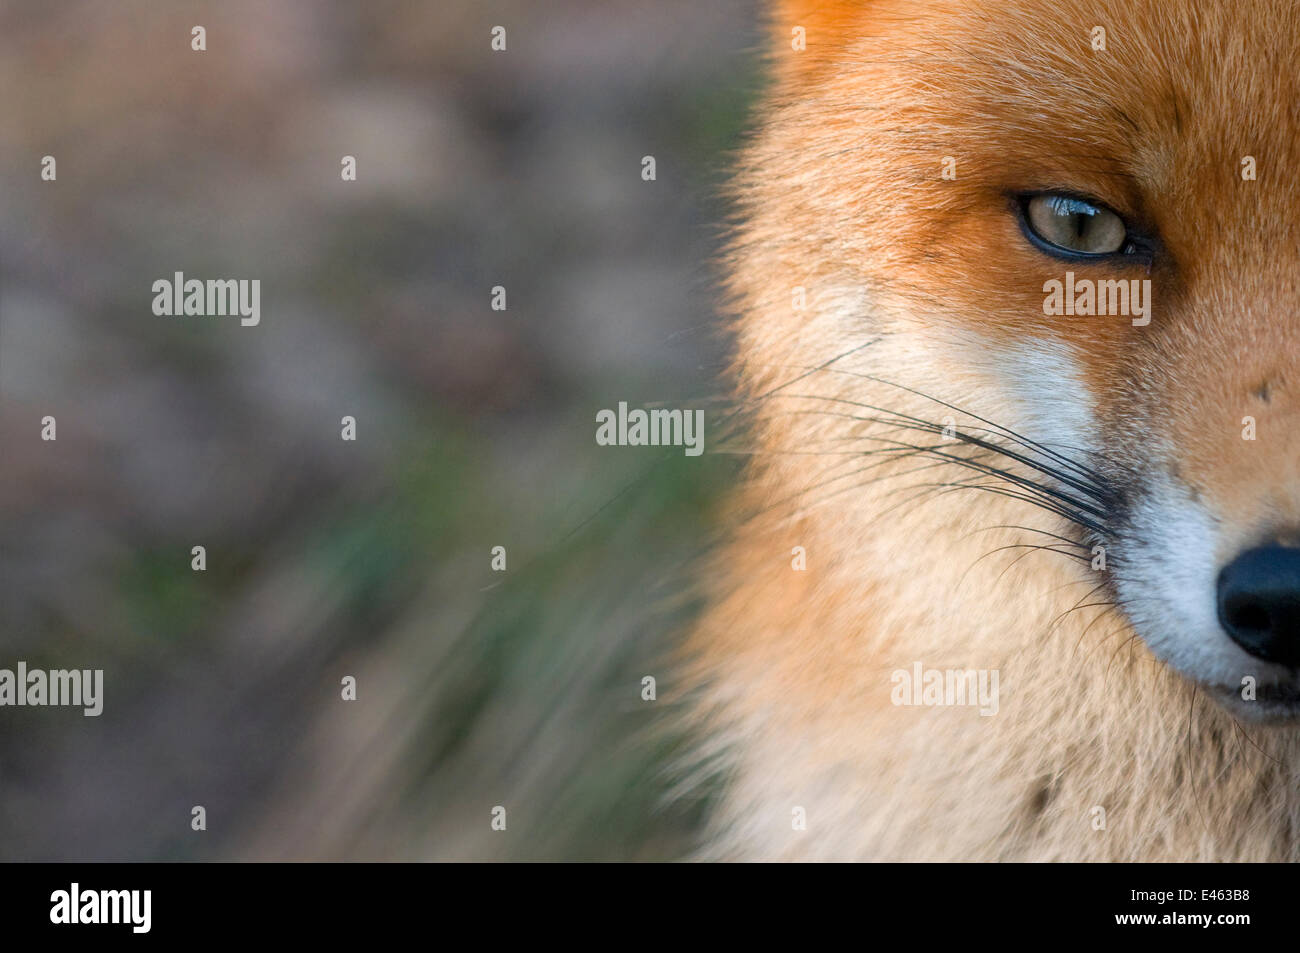 Red fox (Vulpes vulpes) close-up of half of face, captive - Stock Image